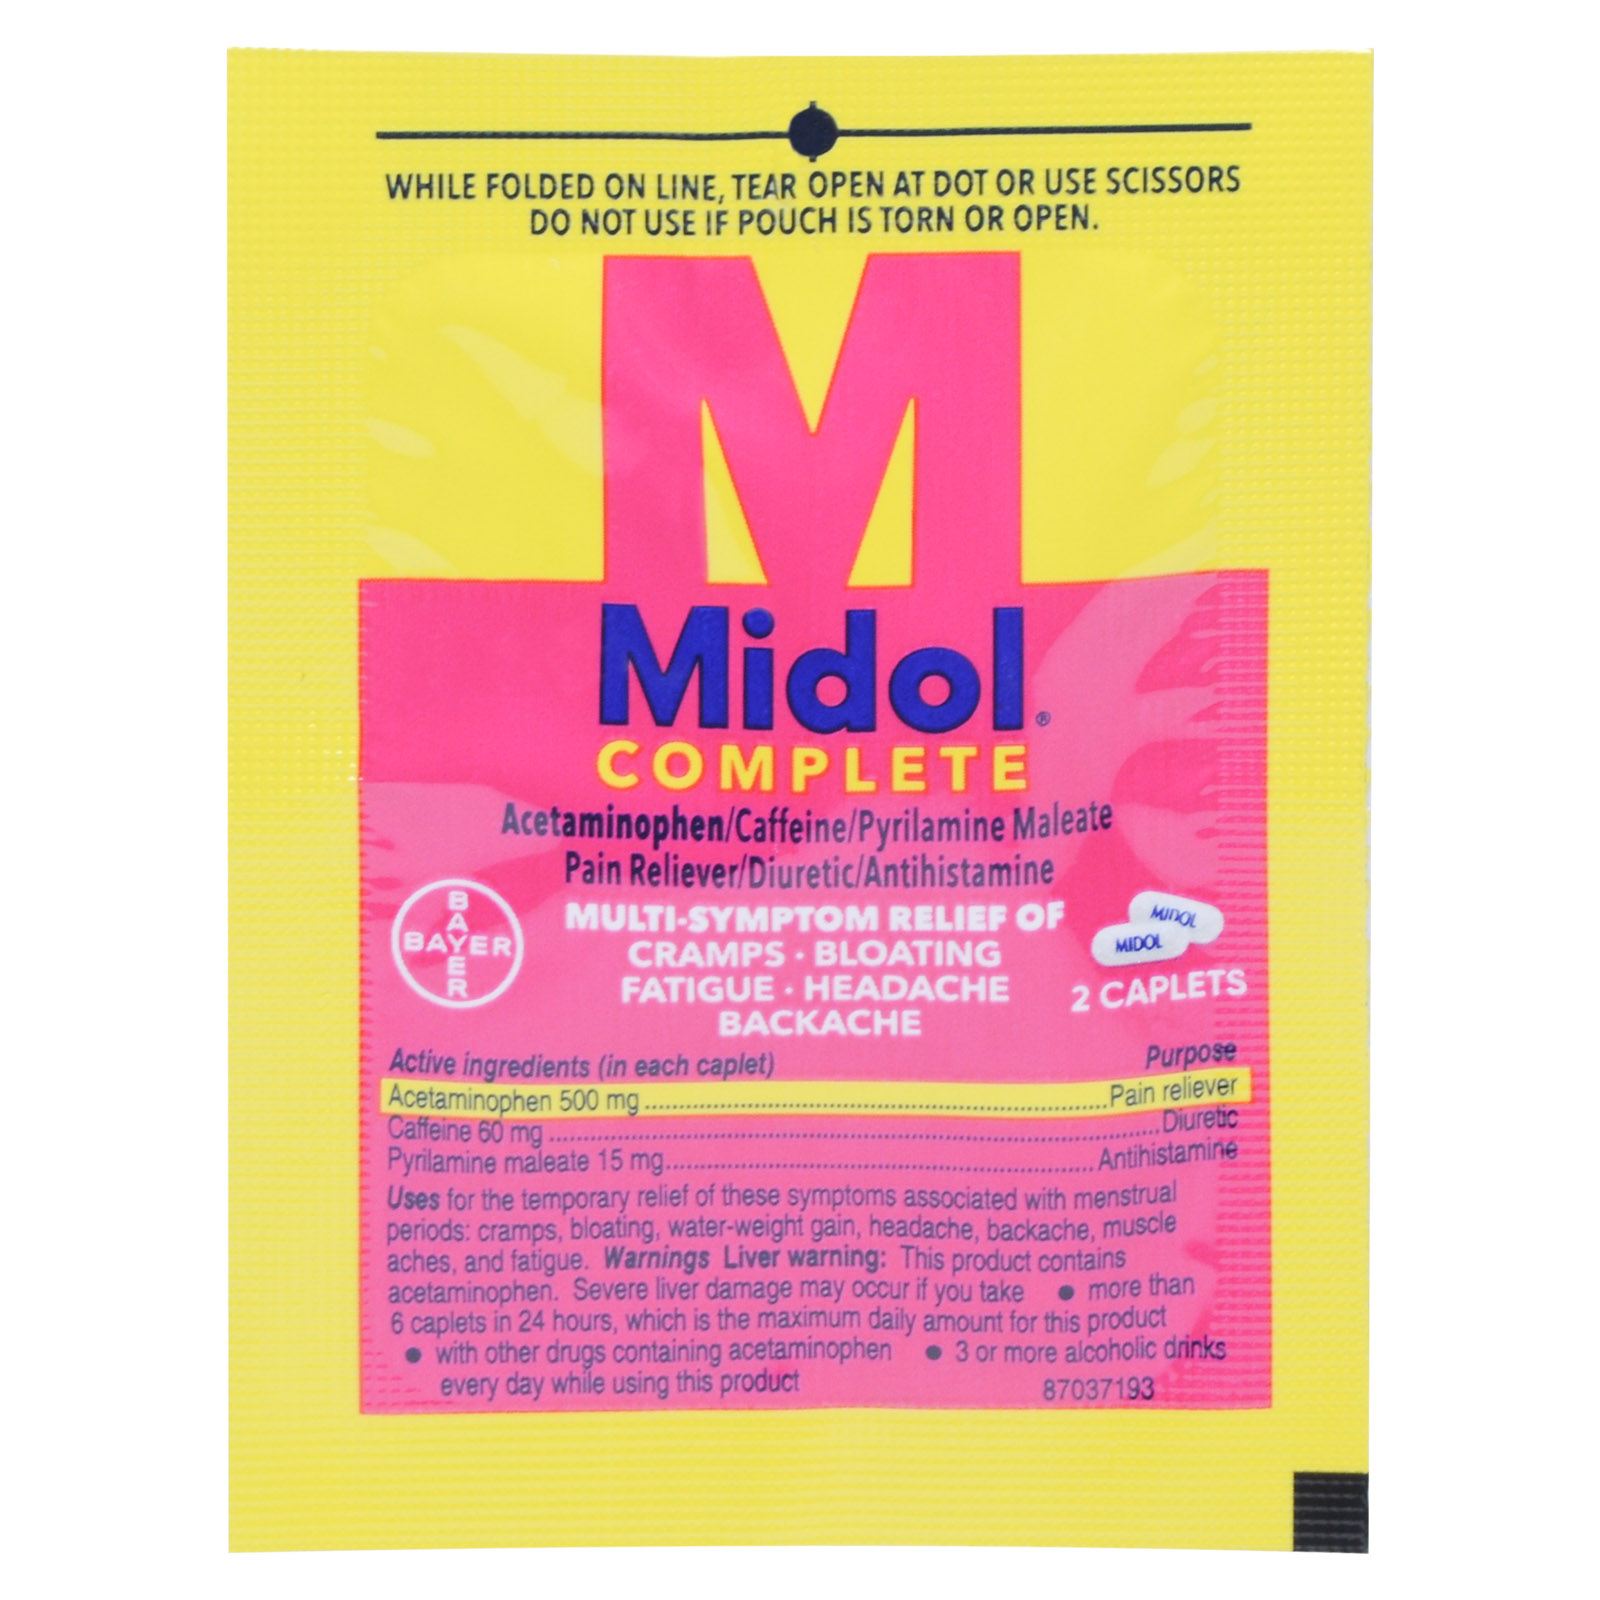 Midol Menstrual Pain Relief Packets Mfasco Health Safety